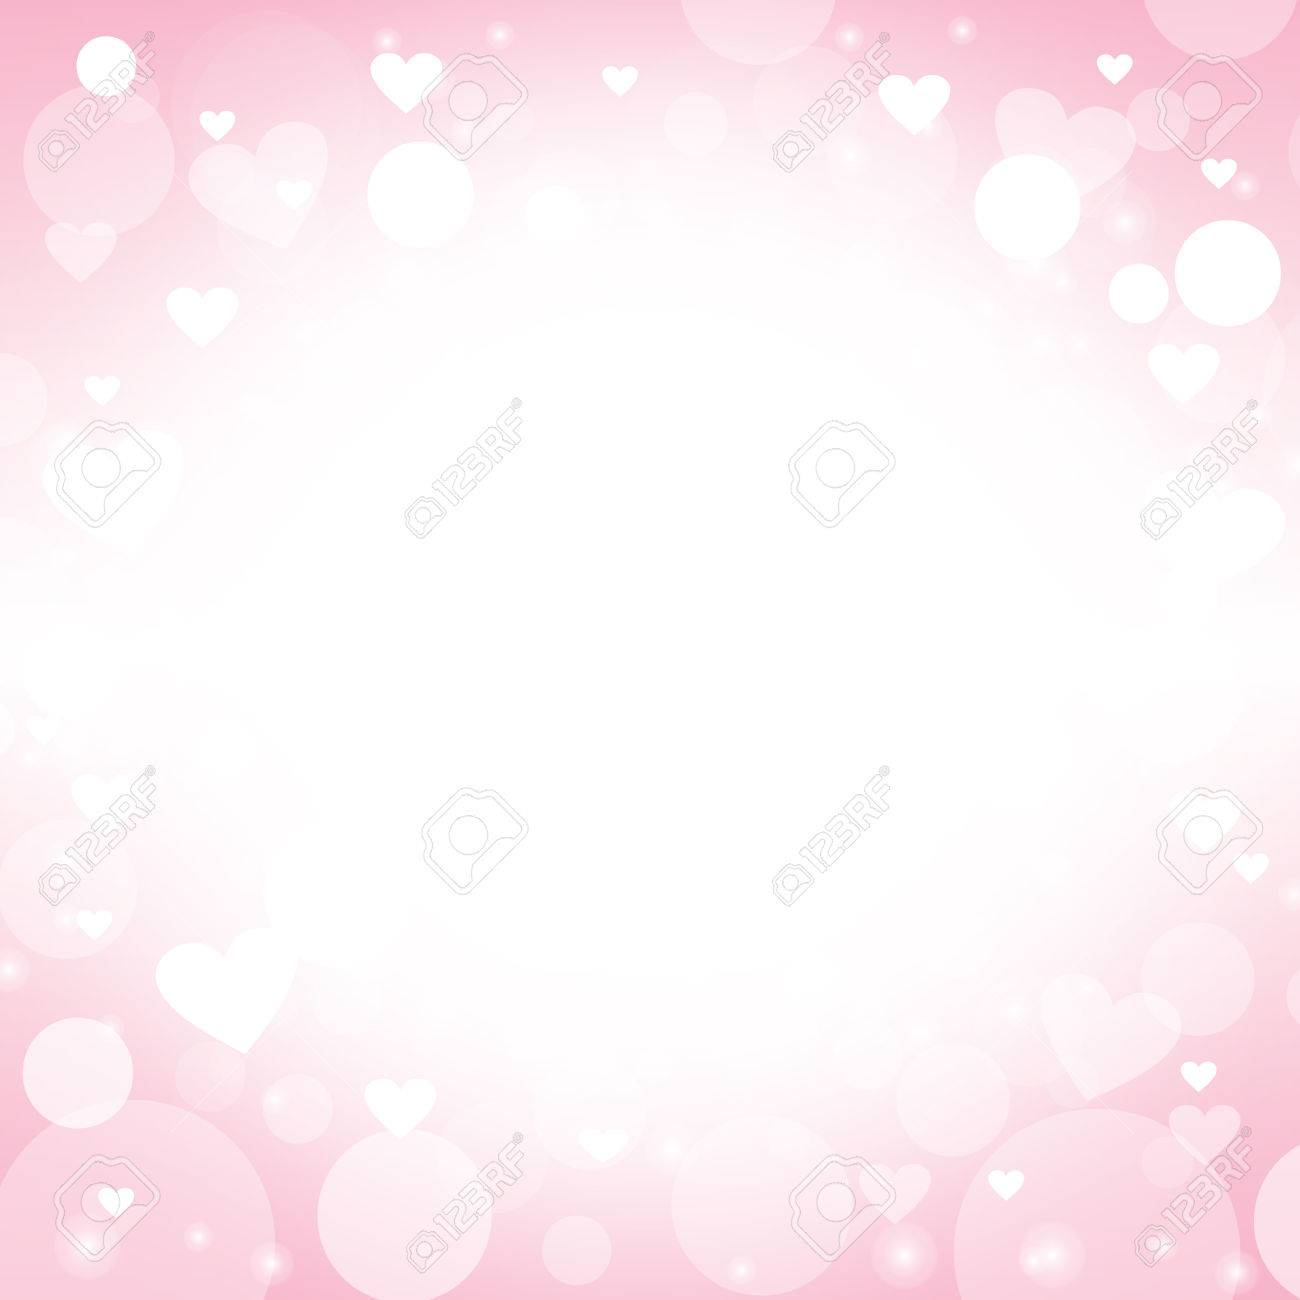 Heart Shape Vector Abstract Pink Background Design Ideas For